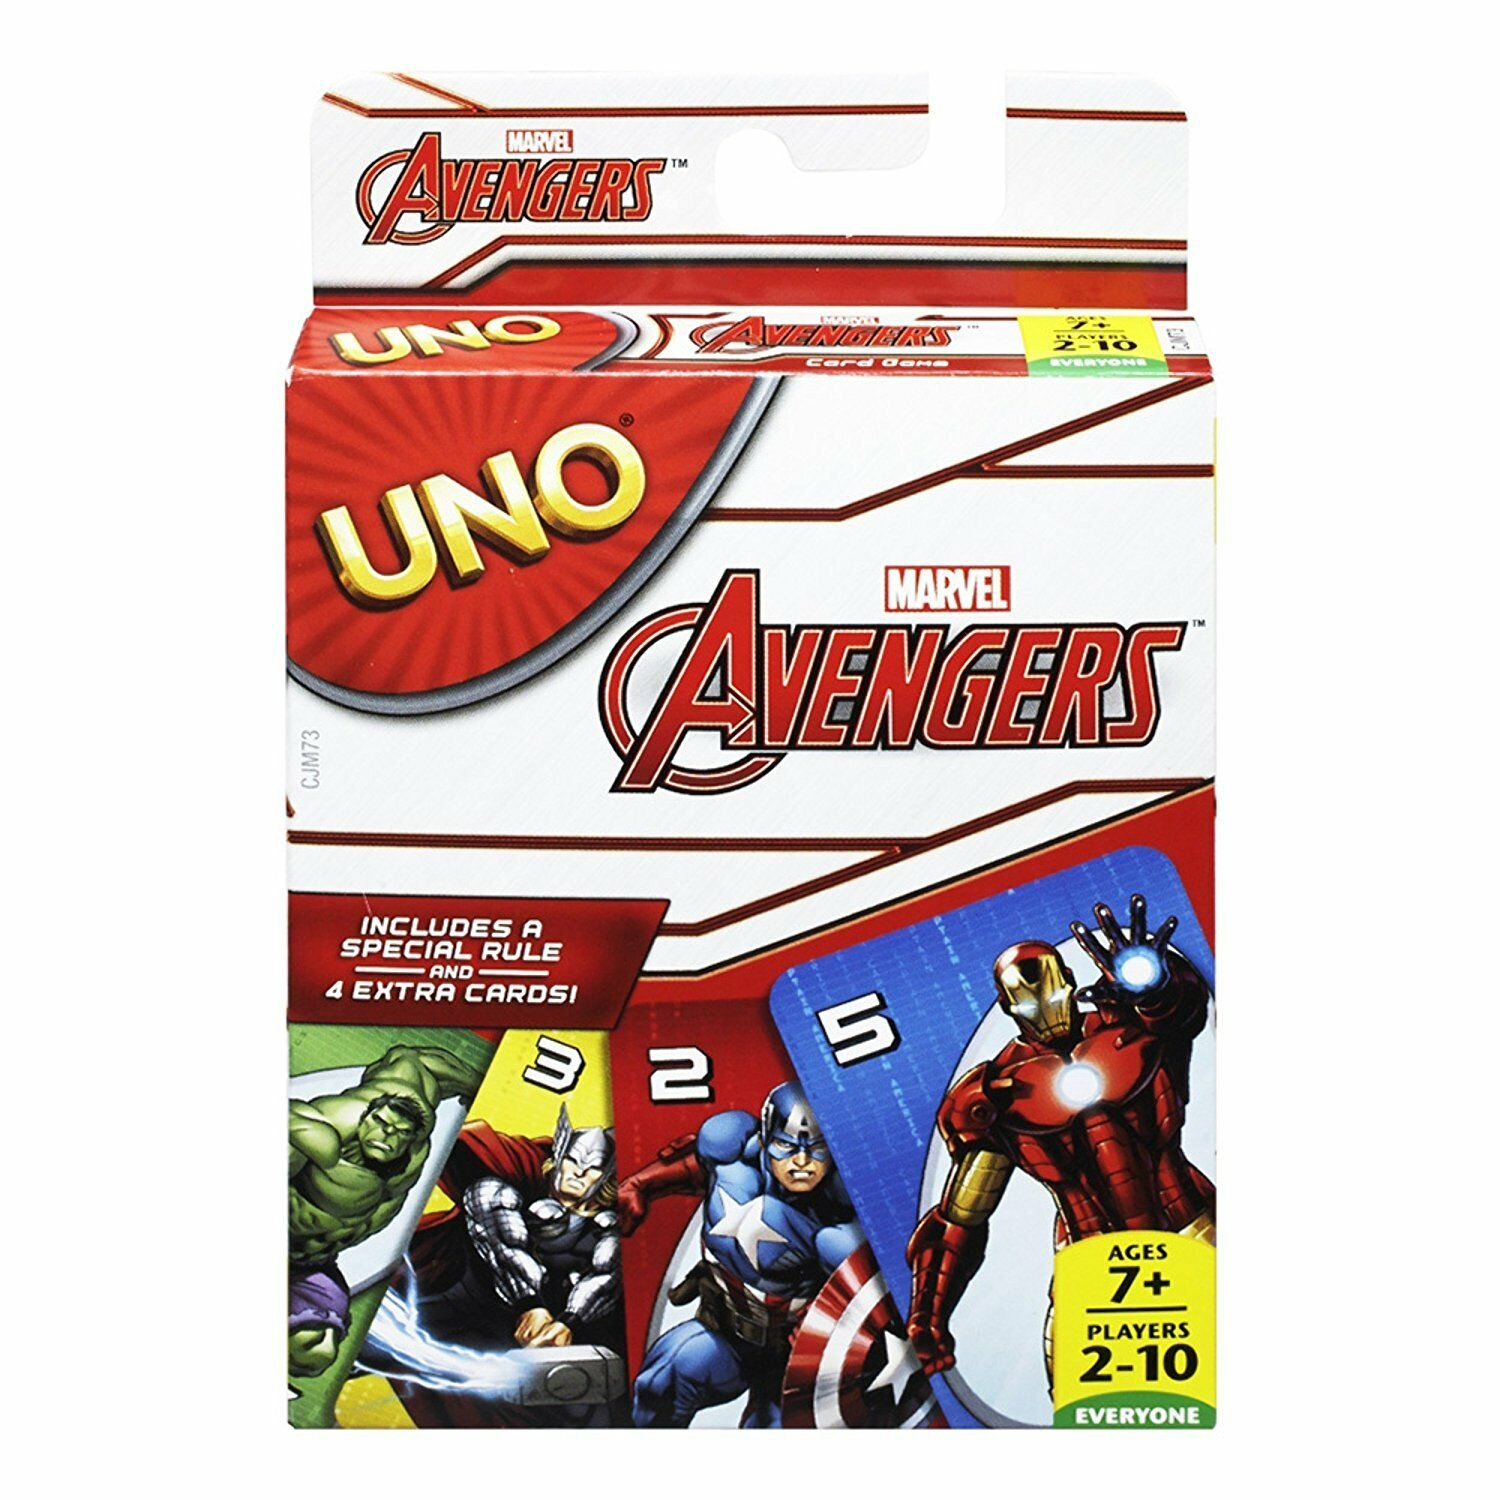 Marvel Avengers Uno Card Game Sealed Package Mattel Games